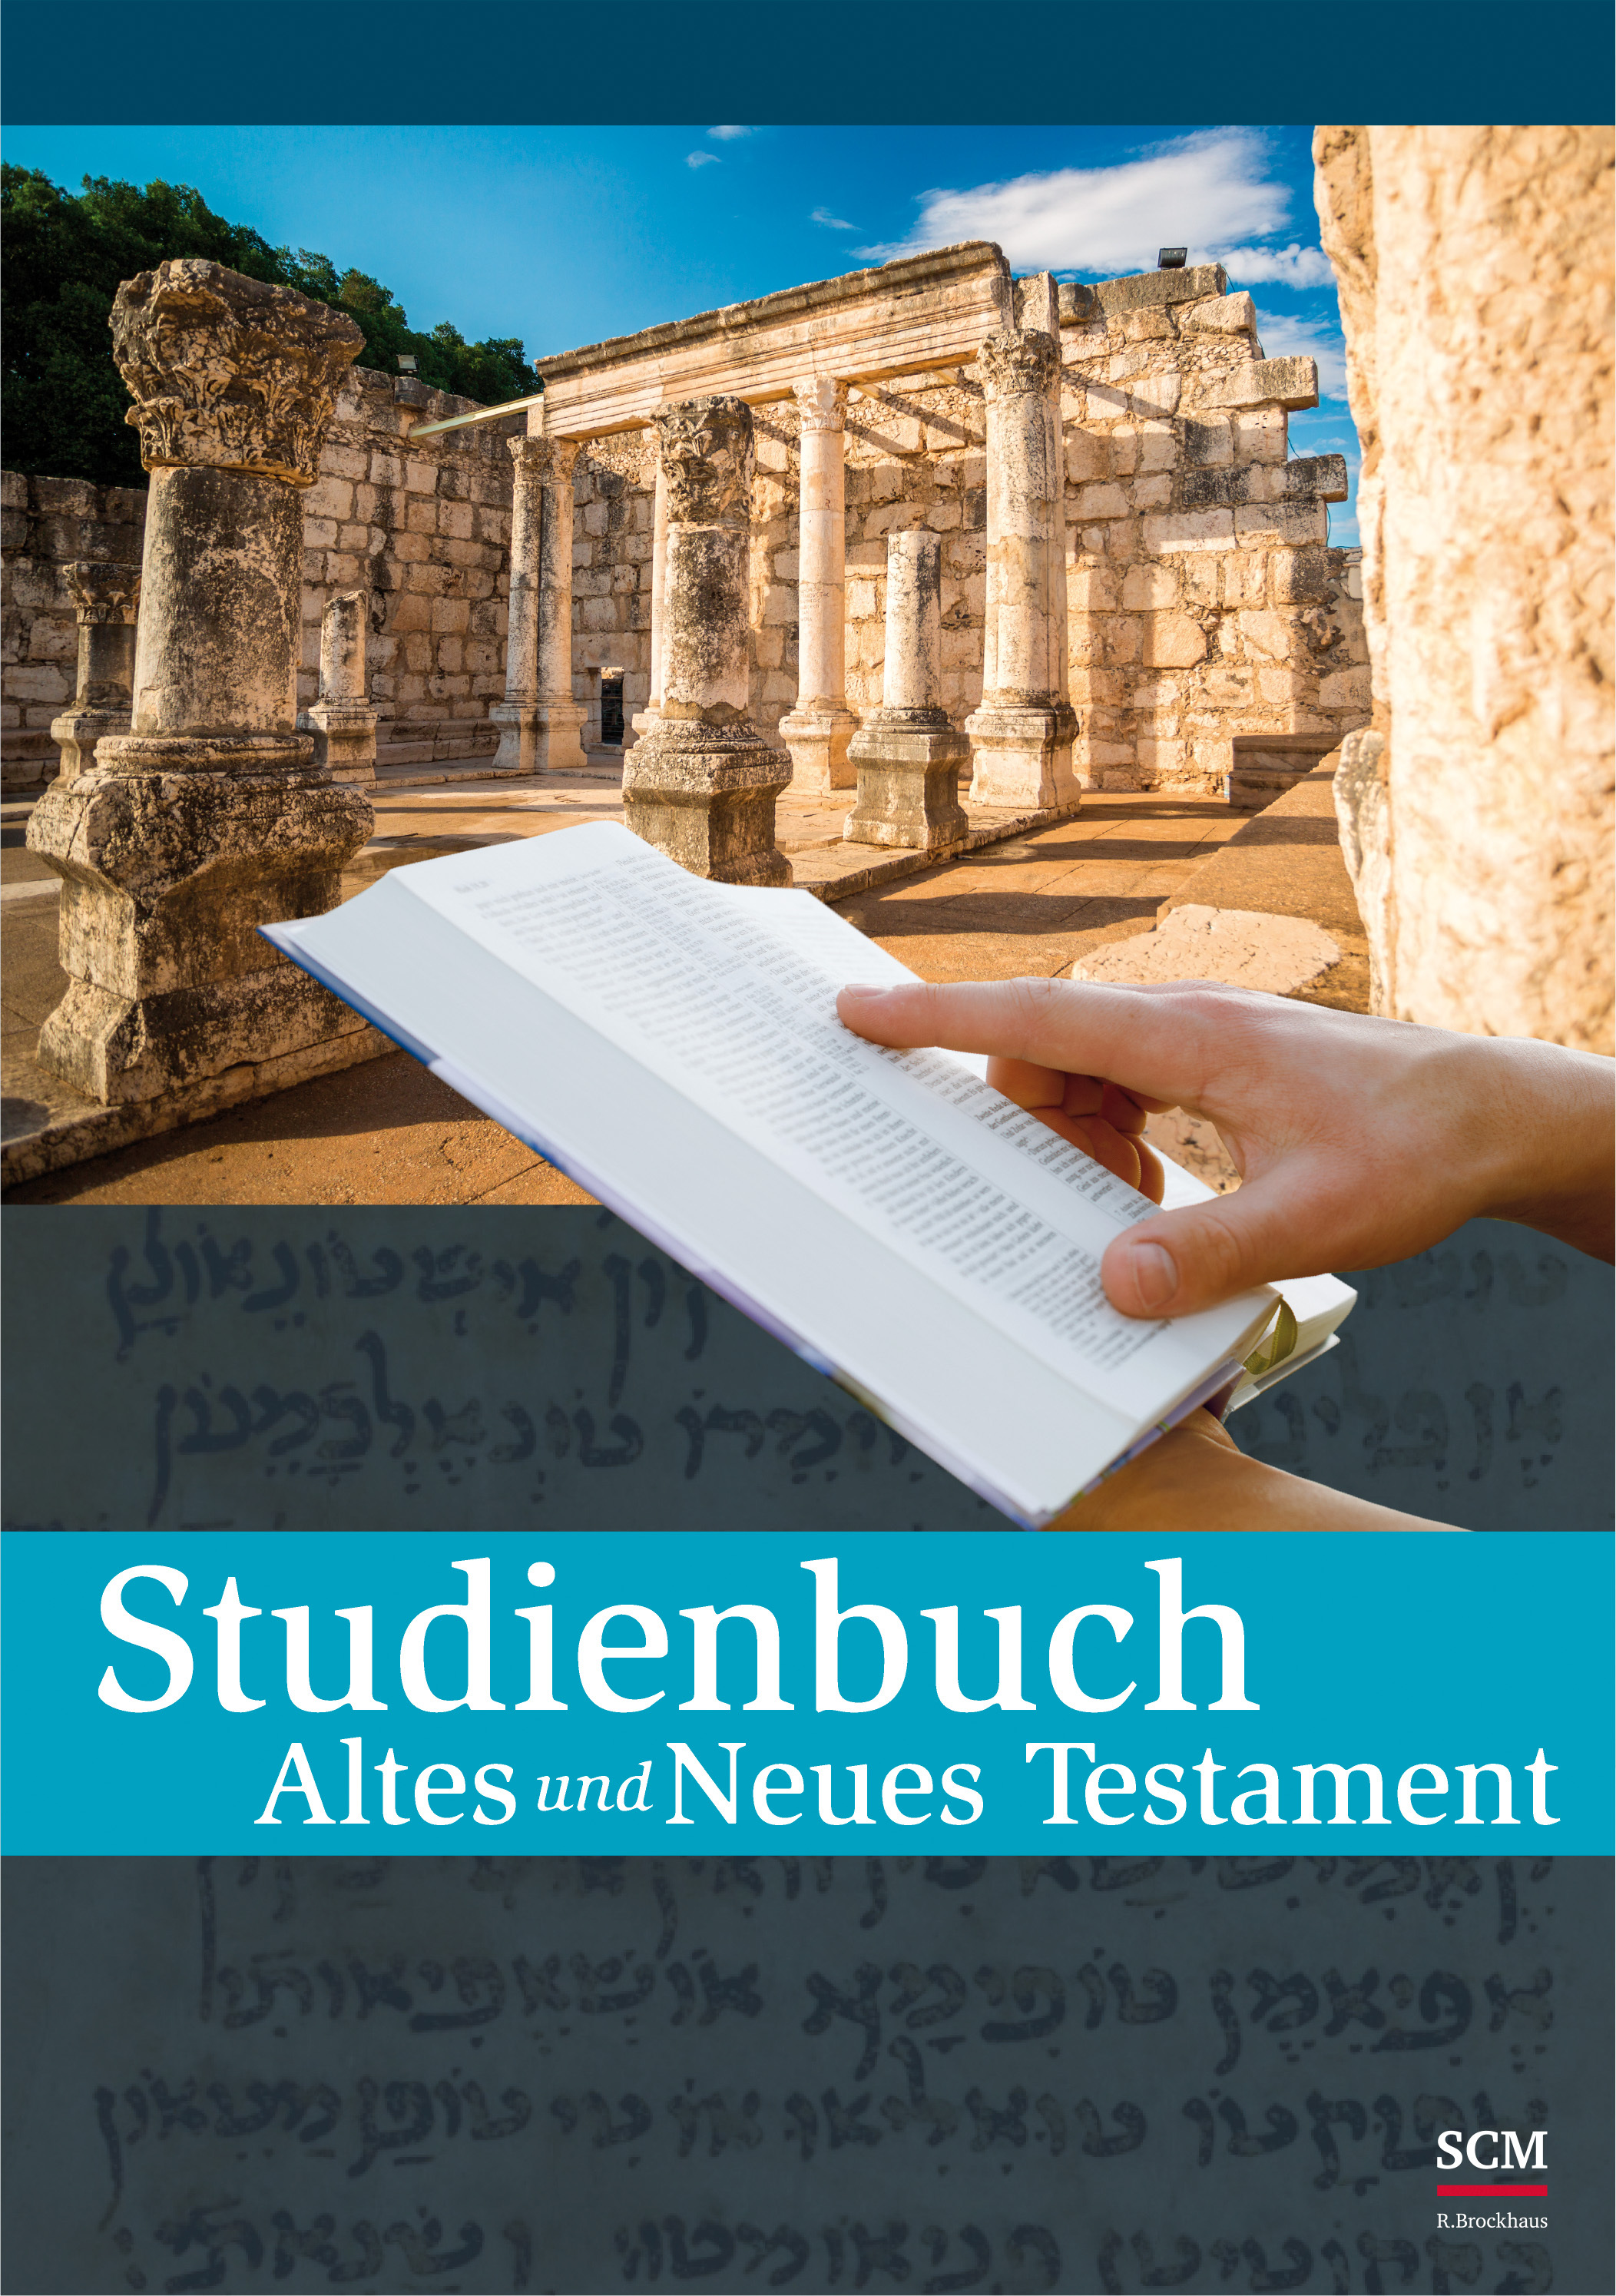 Altes Testament Neues Testament Unterschied